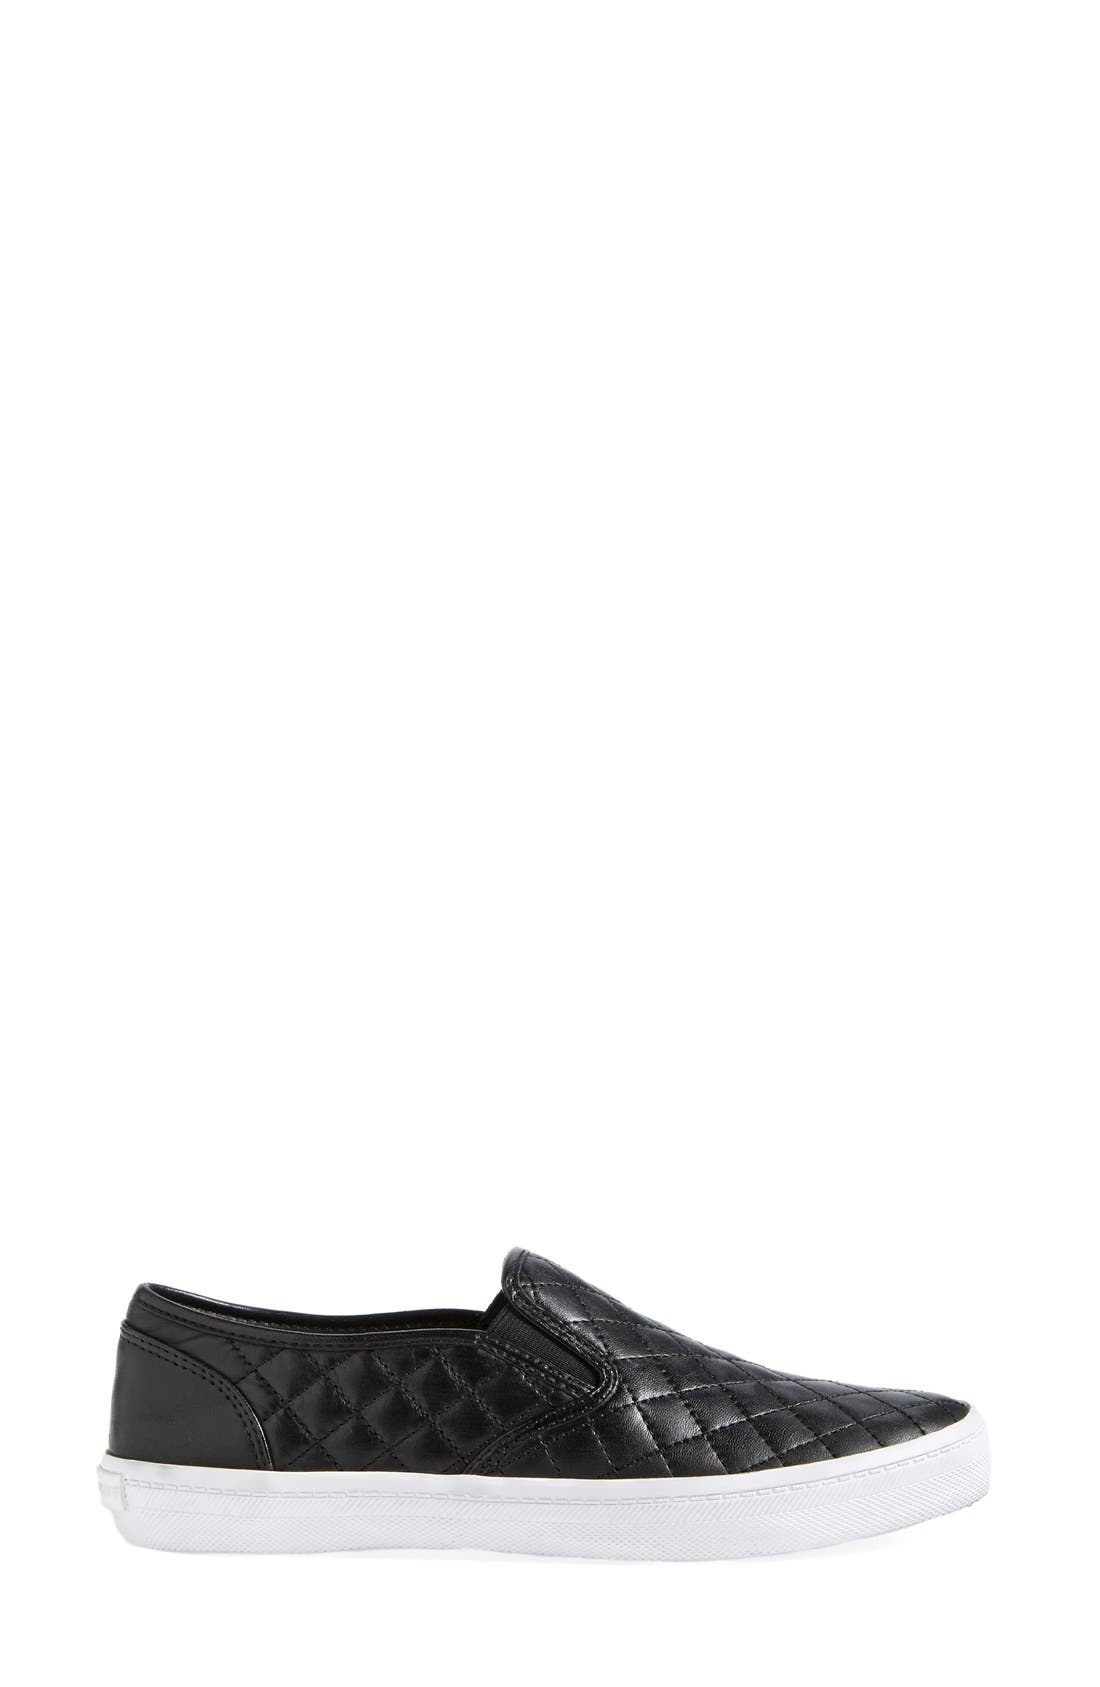 Alternate Image 4  - Rebecca Minkoff 'Sal' Slip-On Leather Sneaker (Women)